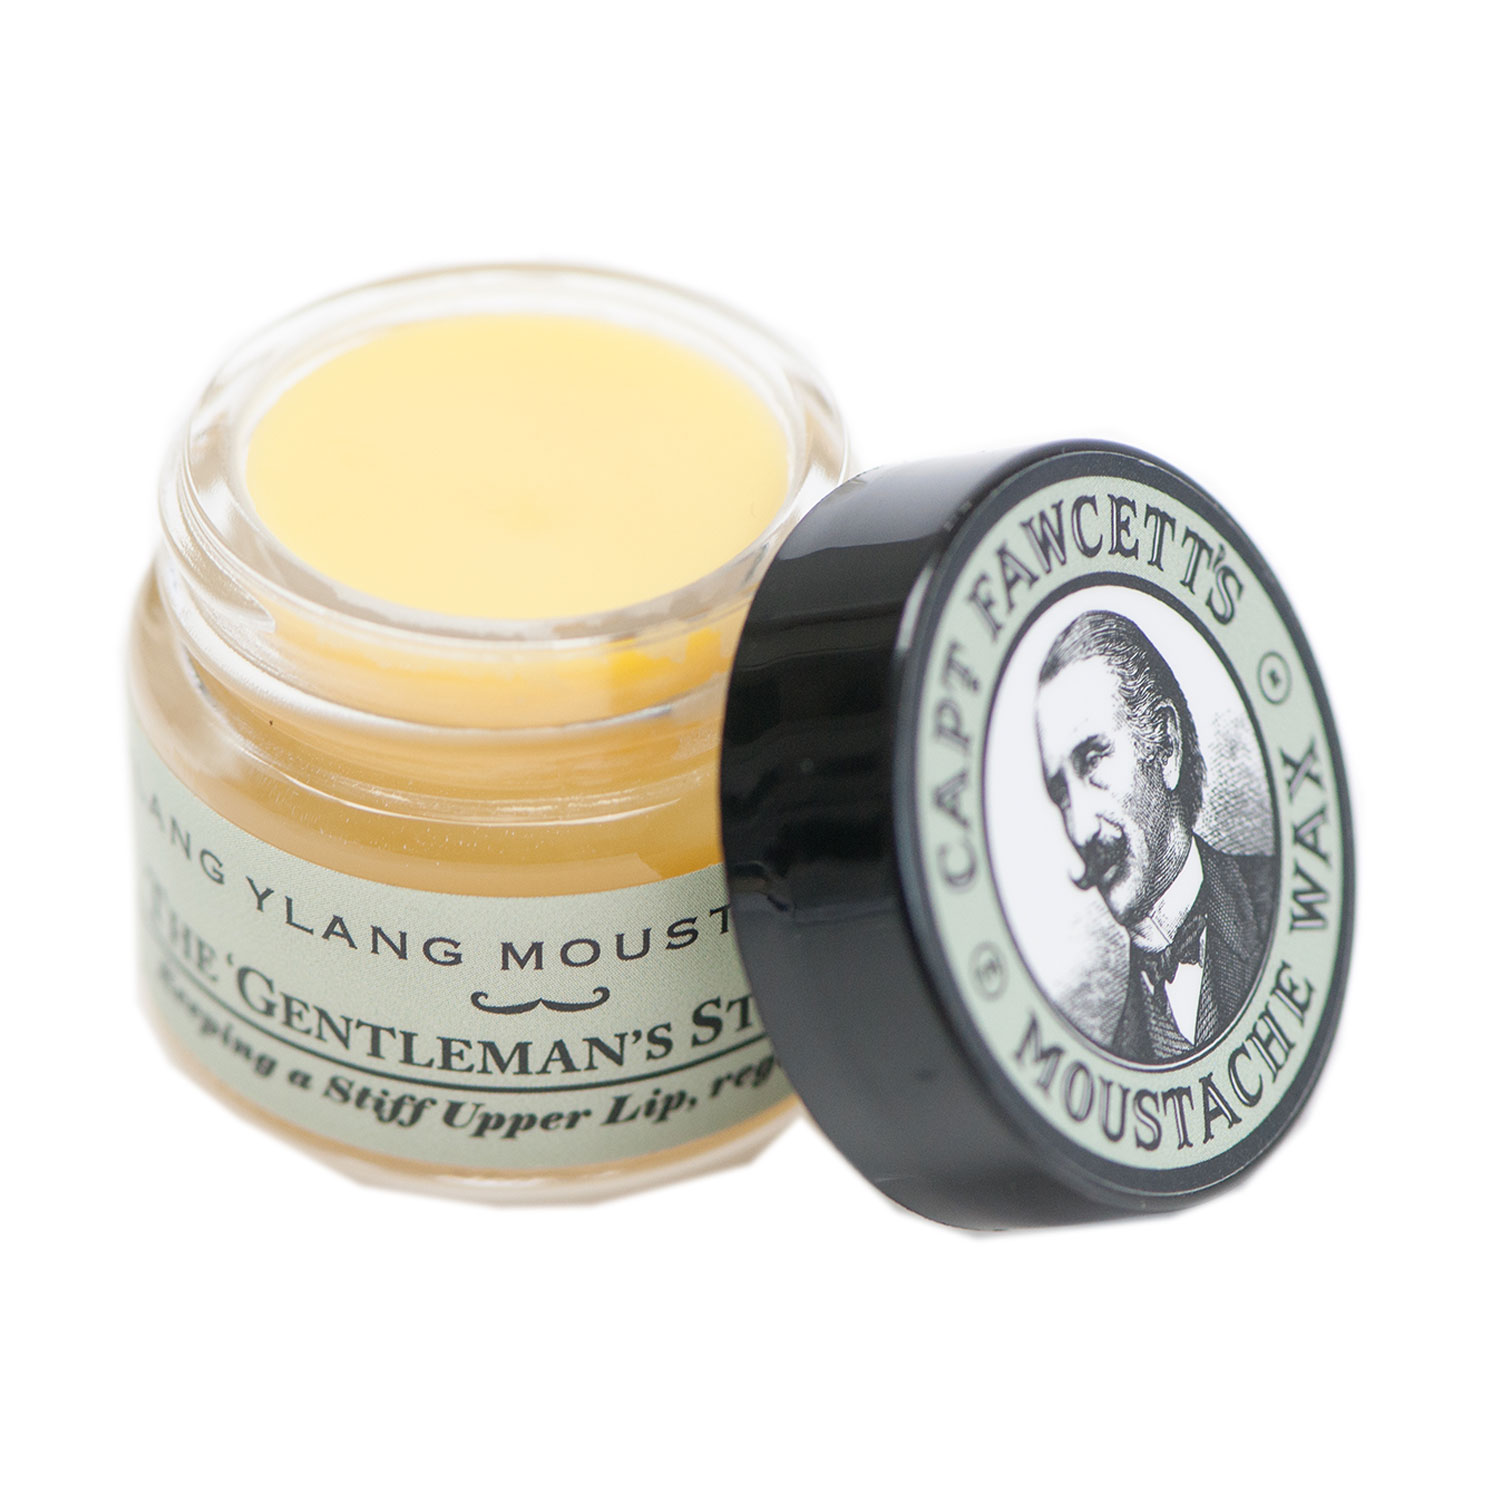 Capt. Fawcett Care - Ylang Ylang Moustache Wax